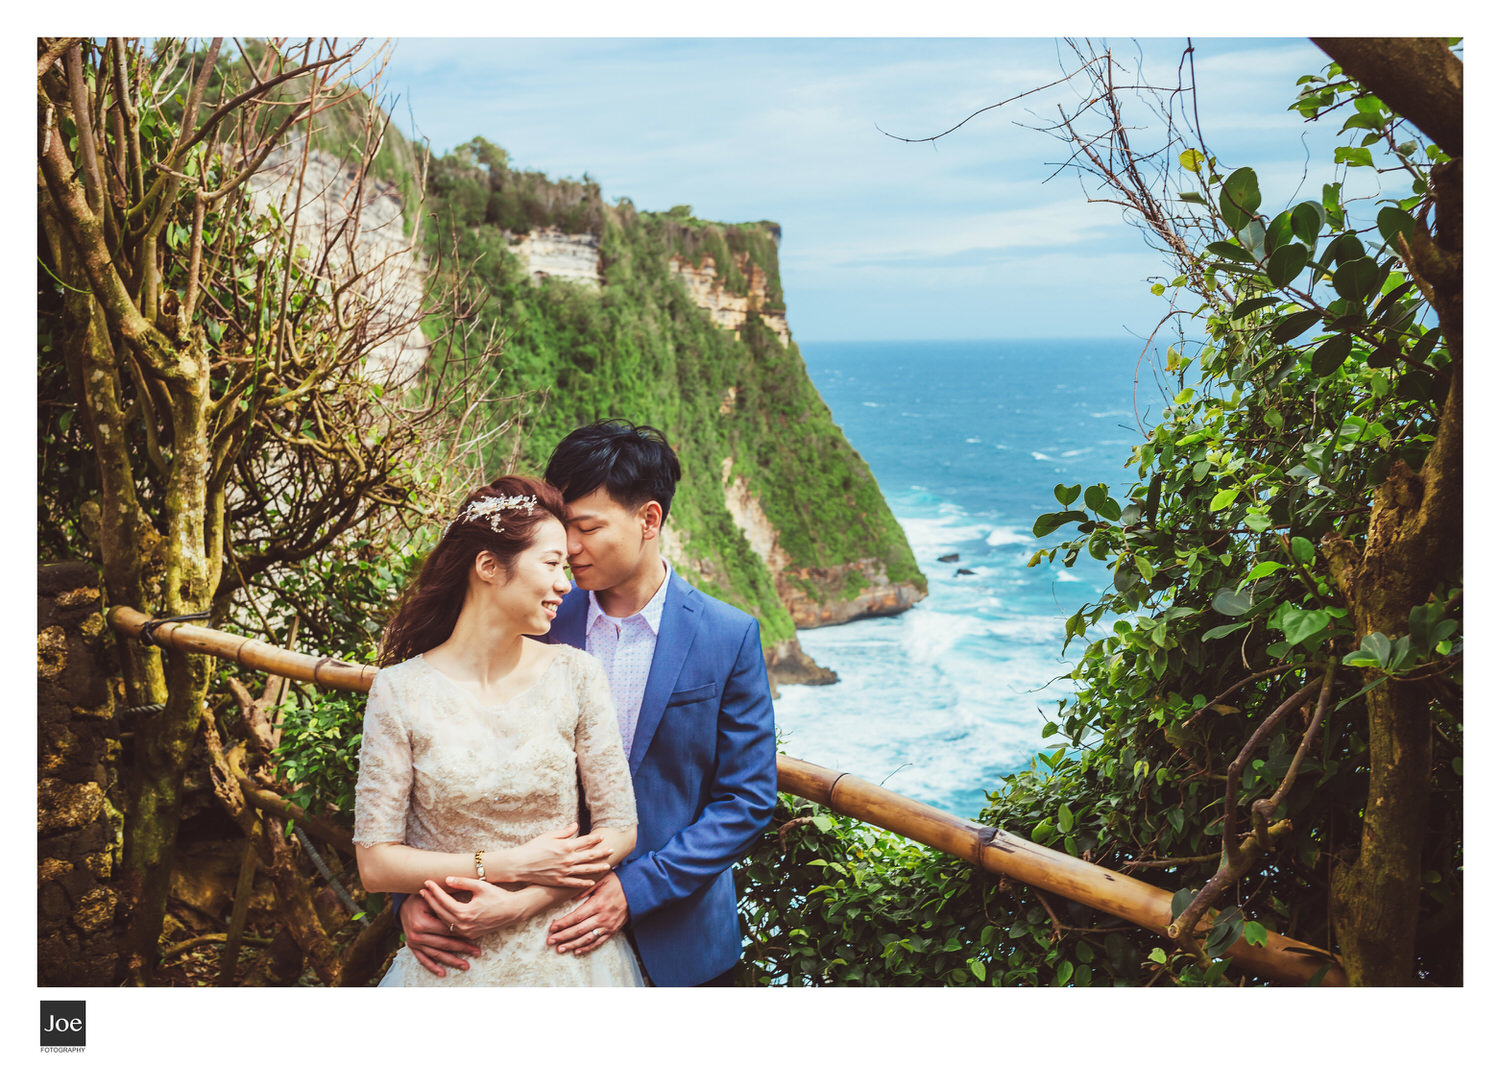 joe-fotography-20-bali-uluwatu-temple-pre-wedding-amelie.jpg